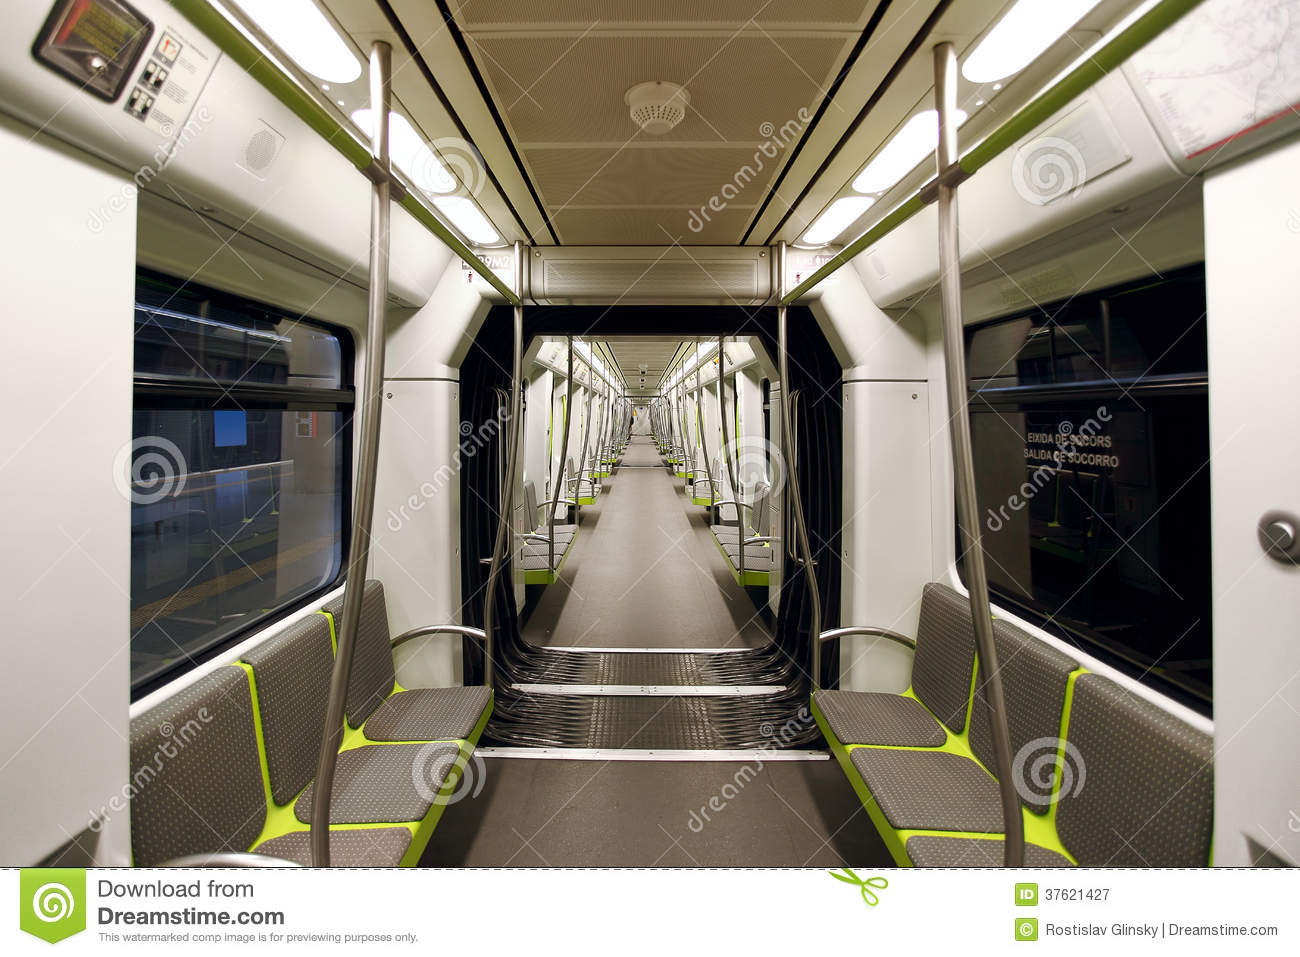 metrovalencia subway car interior view royalty free stock photography image 37621427. Black Bedroom Furniture Sets. Home Design Ideas